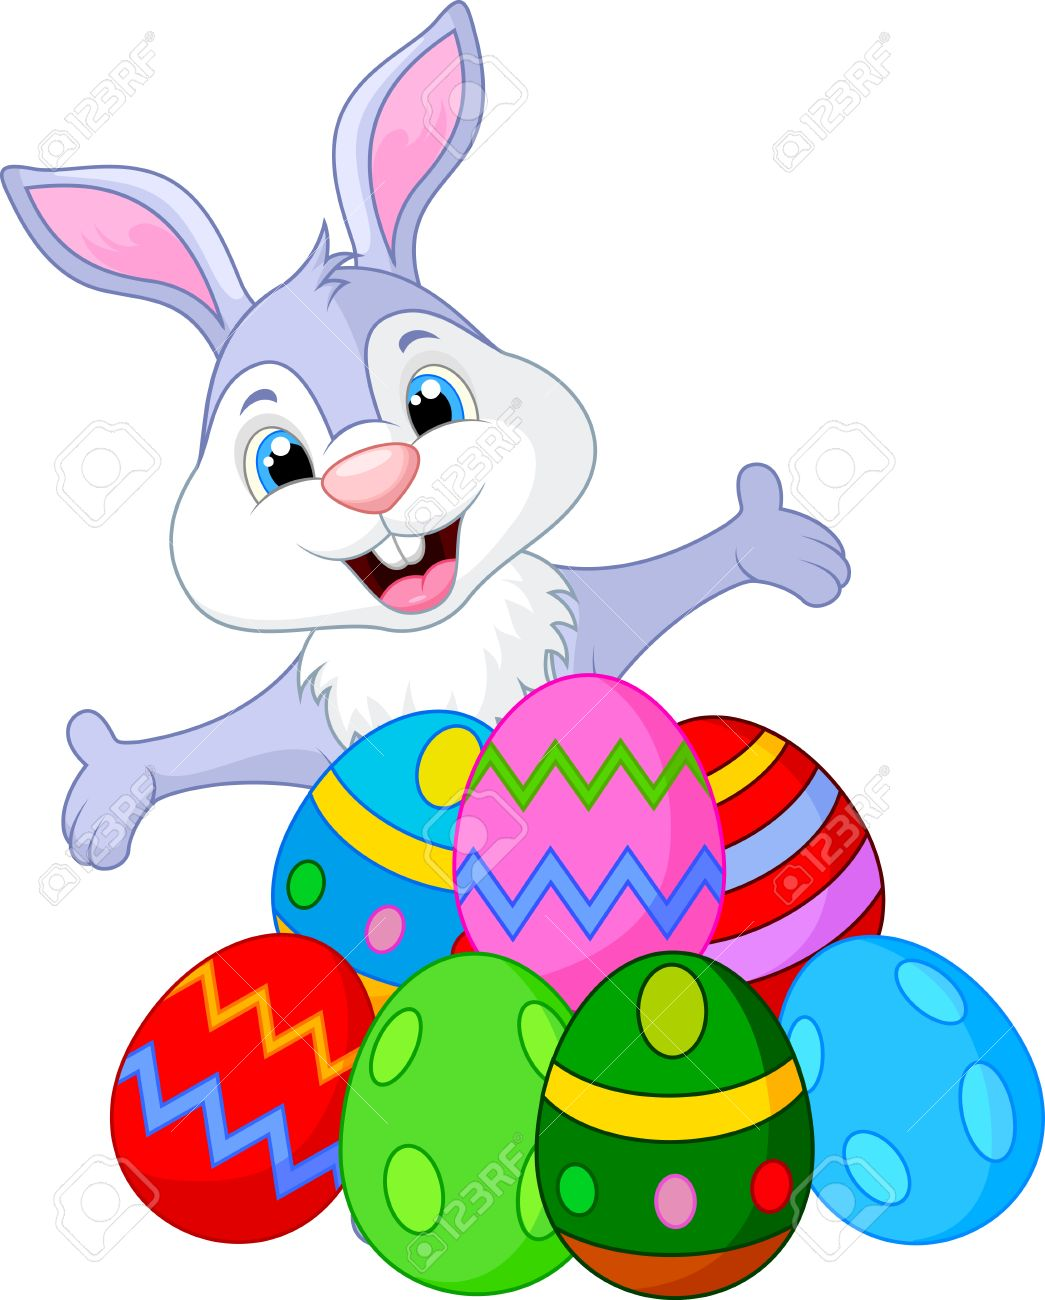 Easter funny rabbit with eggs.